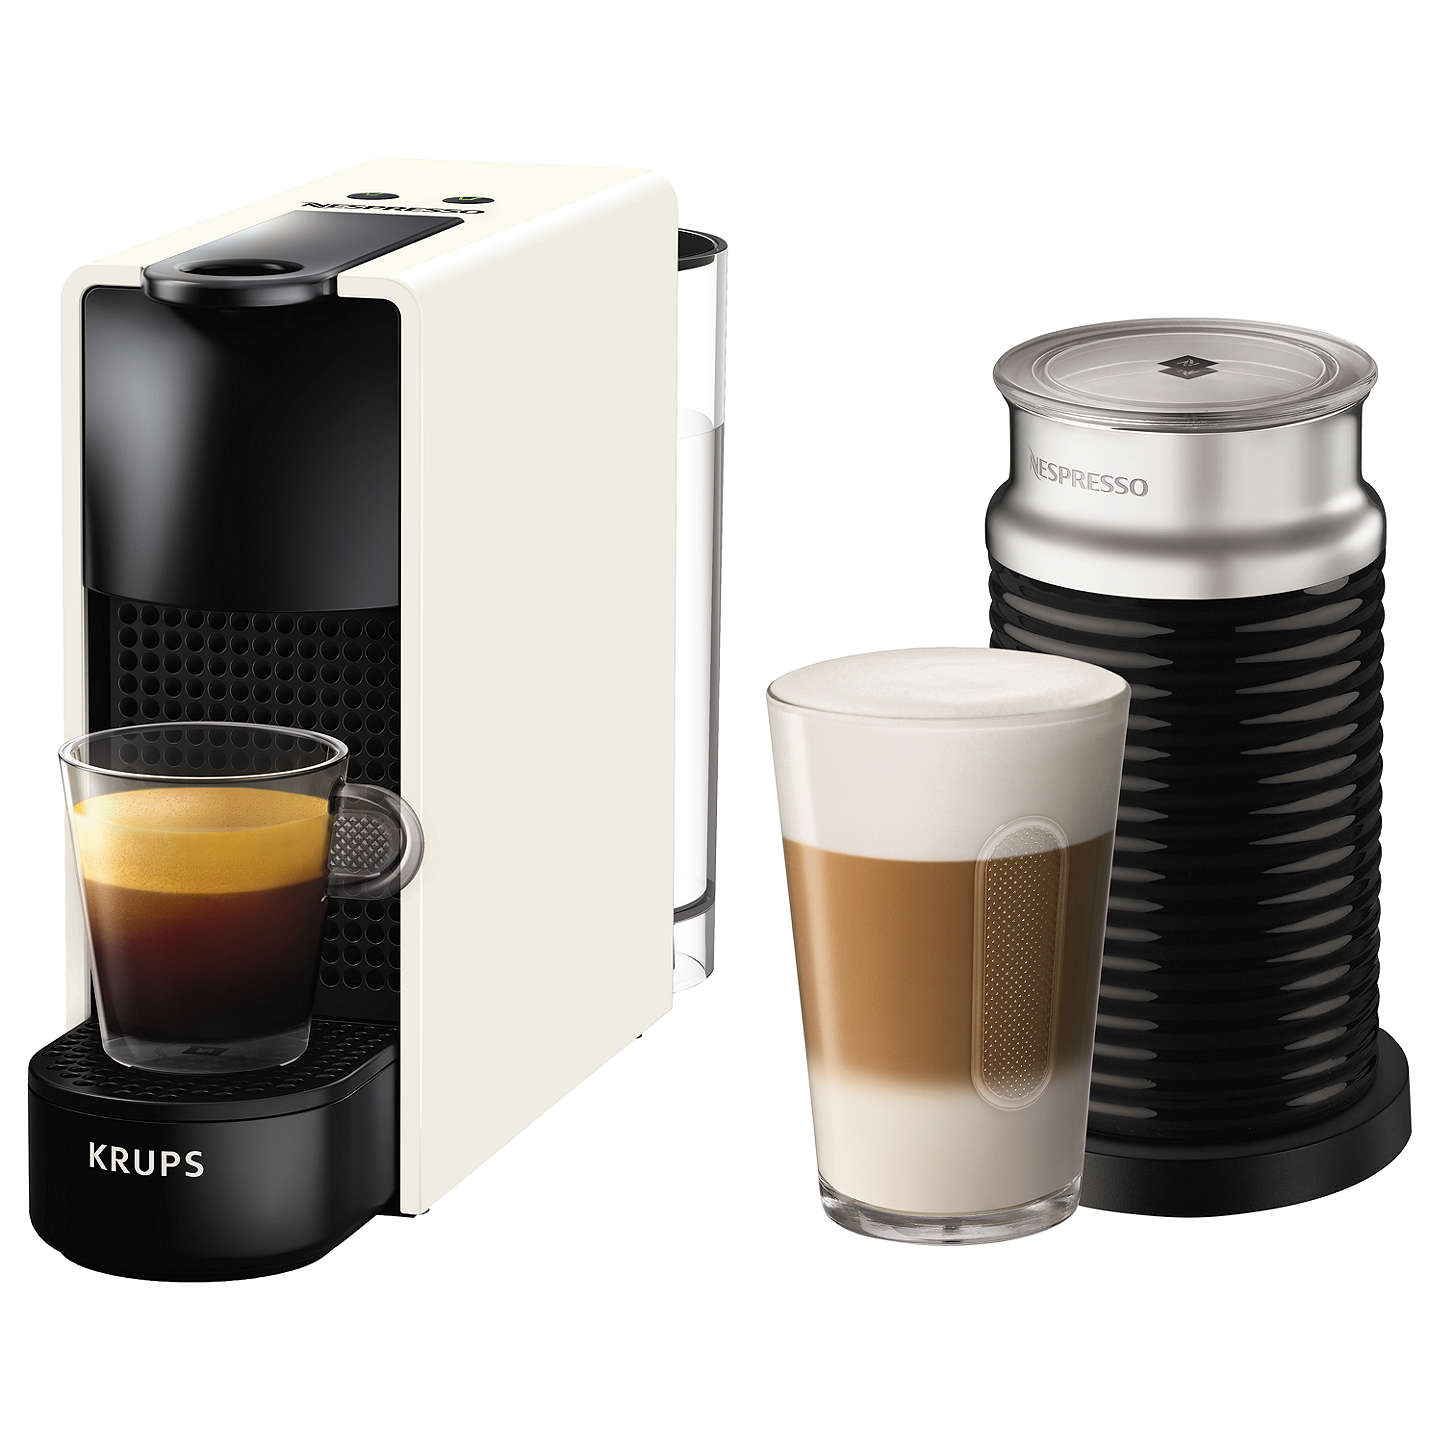 nespresso essenza mini intense coffee machine by krups with aeroccino milk frother at john lewis. Black Bedroom Furniture Sets. Home Design Ideas